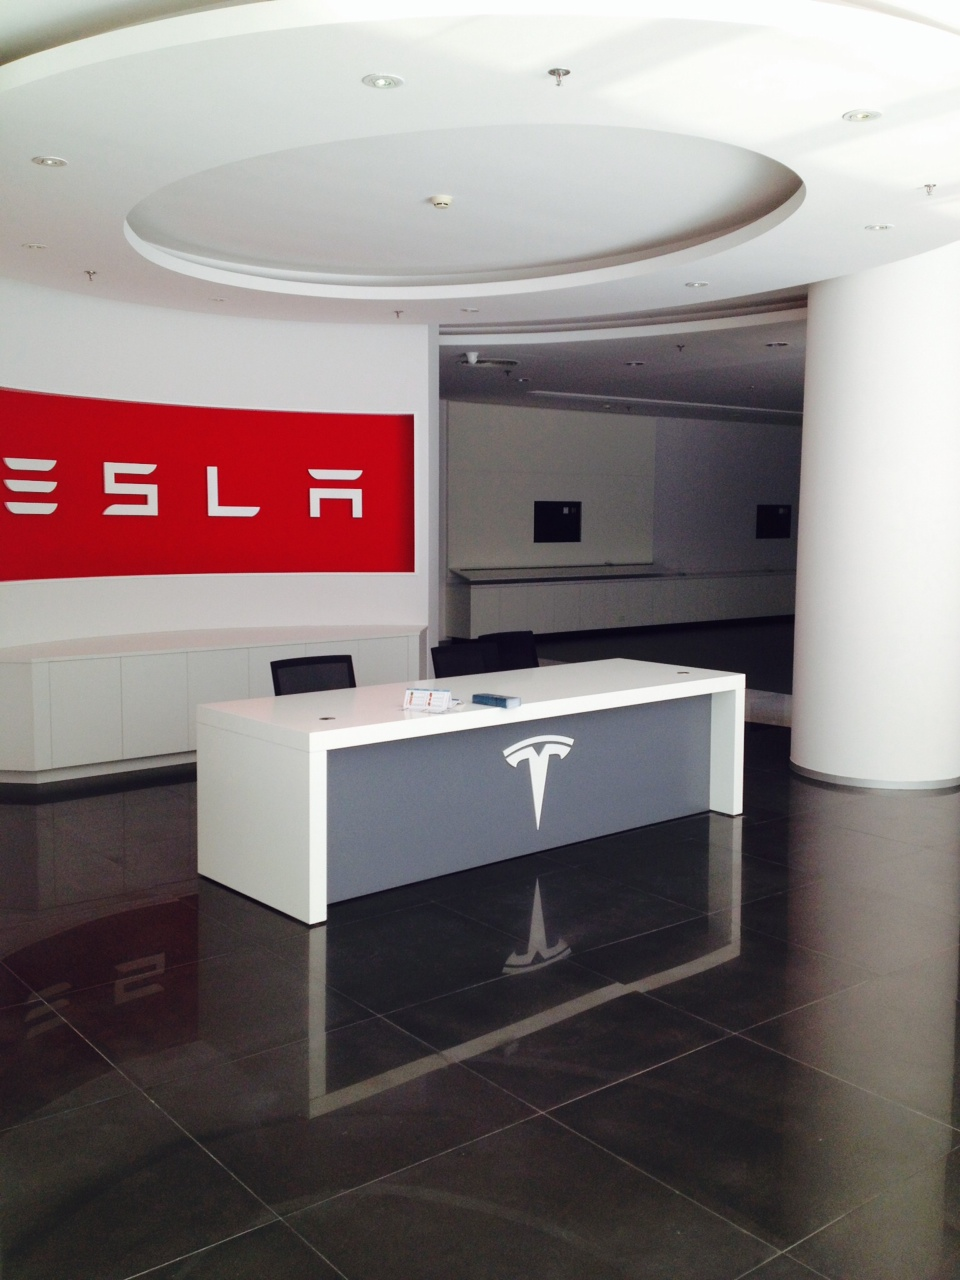 Tesls Beijing office